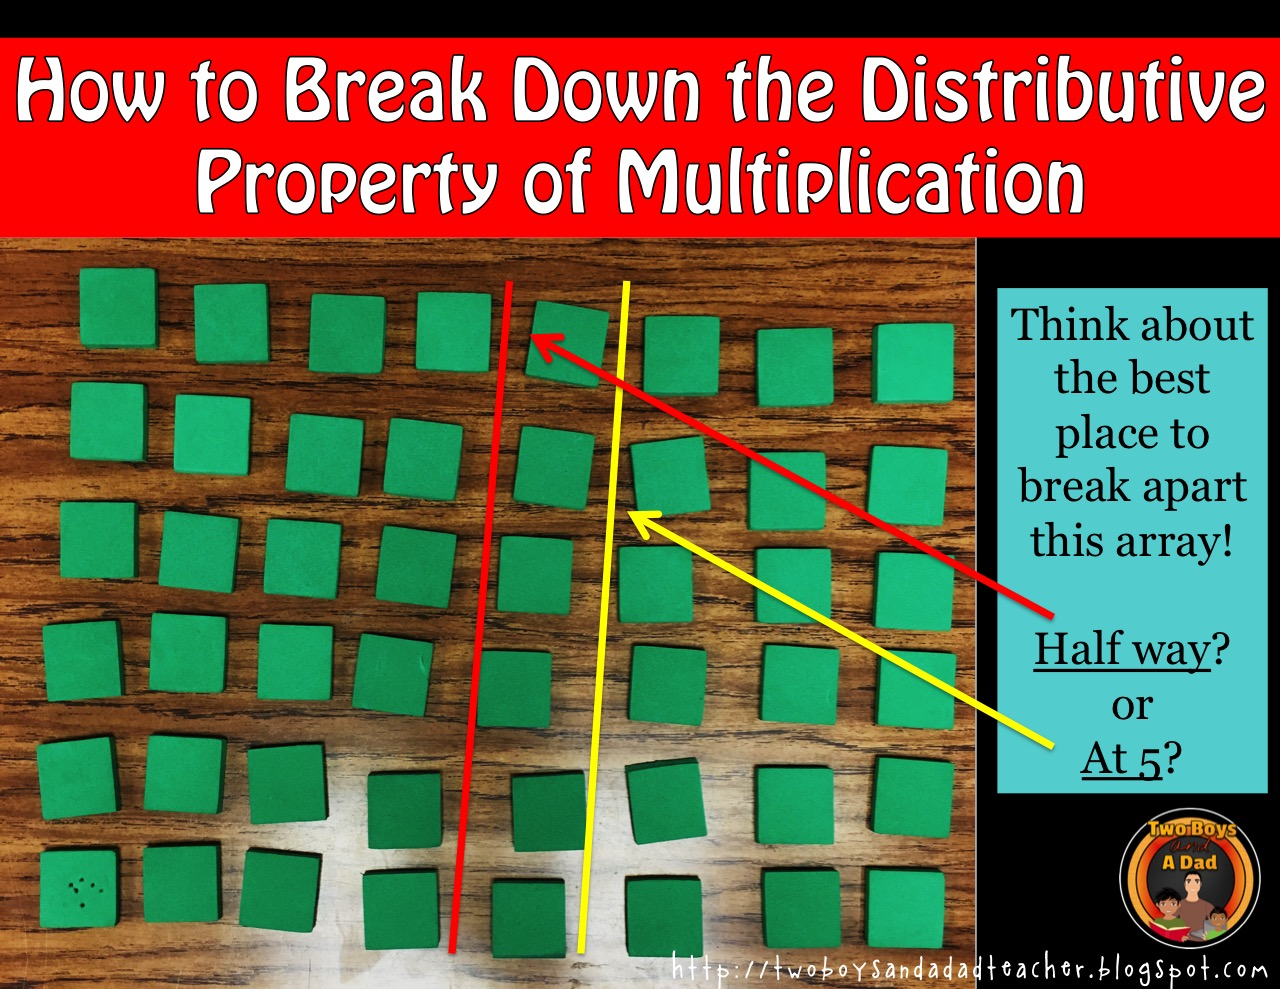 break apart the distributive property of multiplication